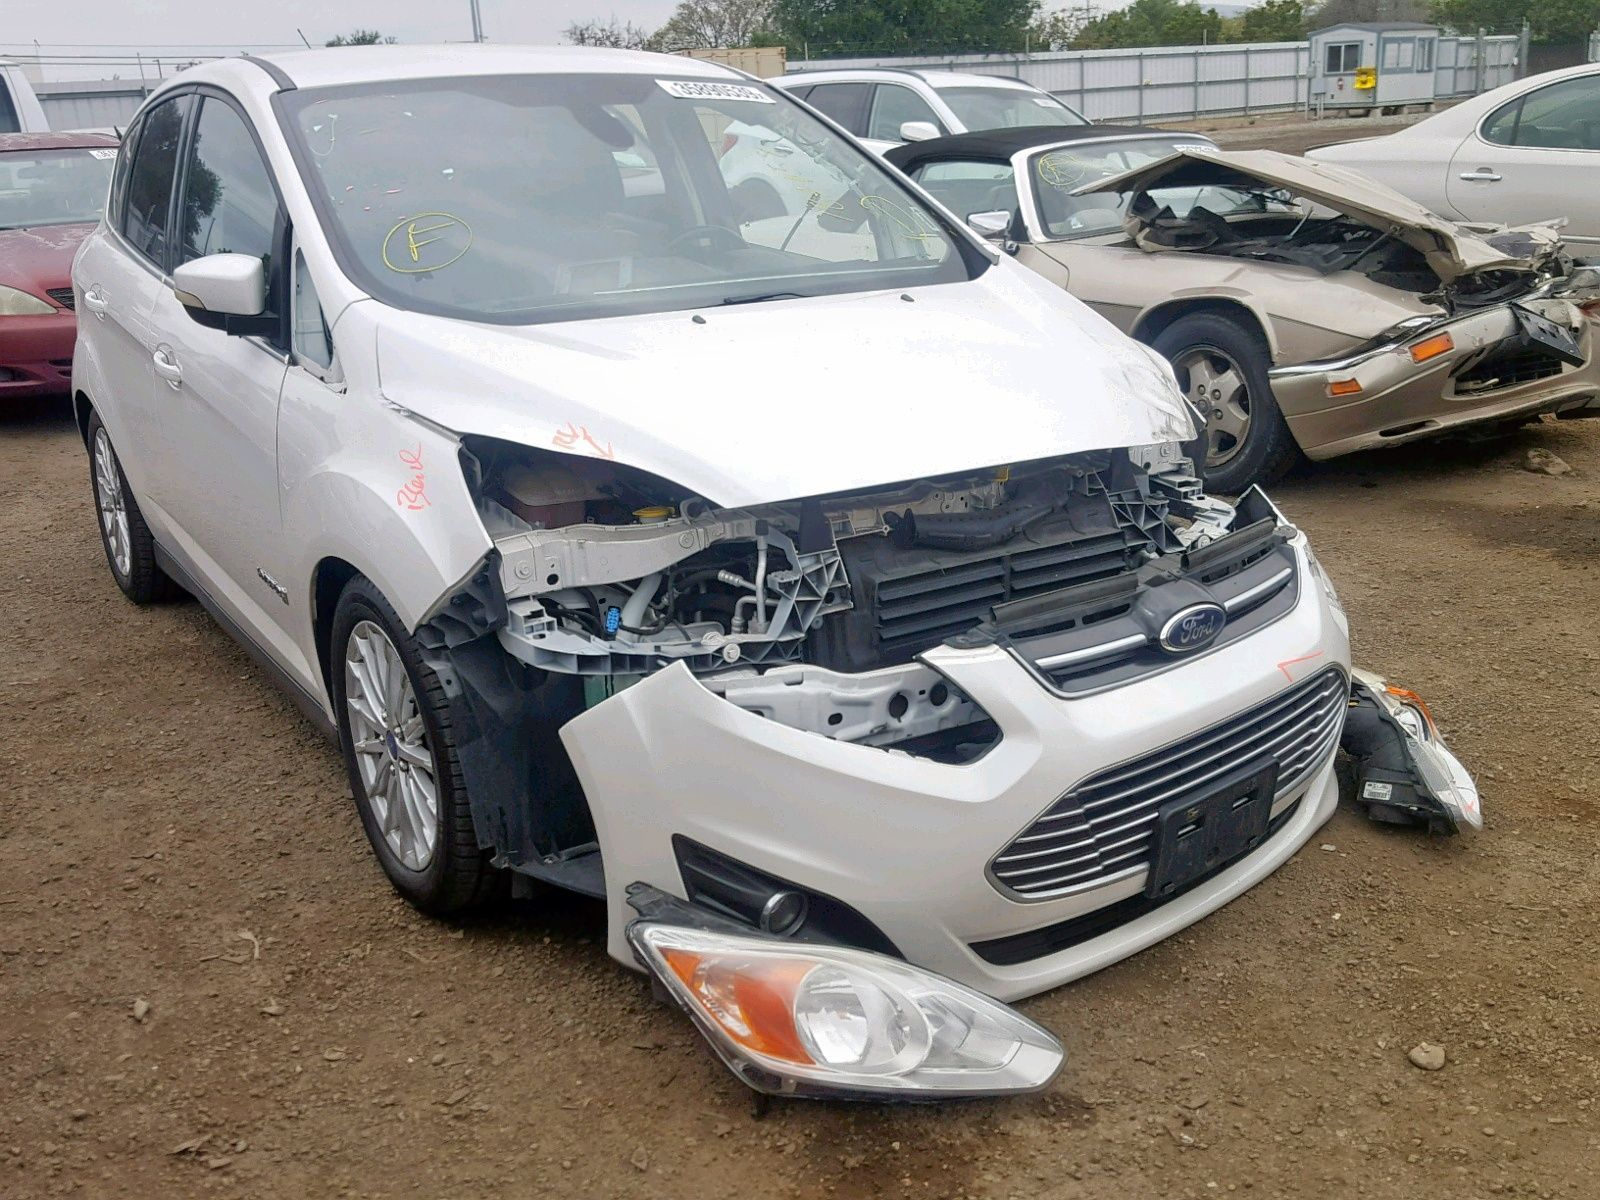 Is it Bad to Buy a Car with a Salvage Title? Car buying